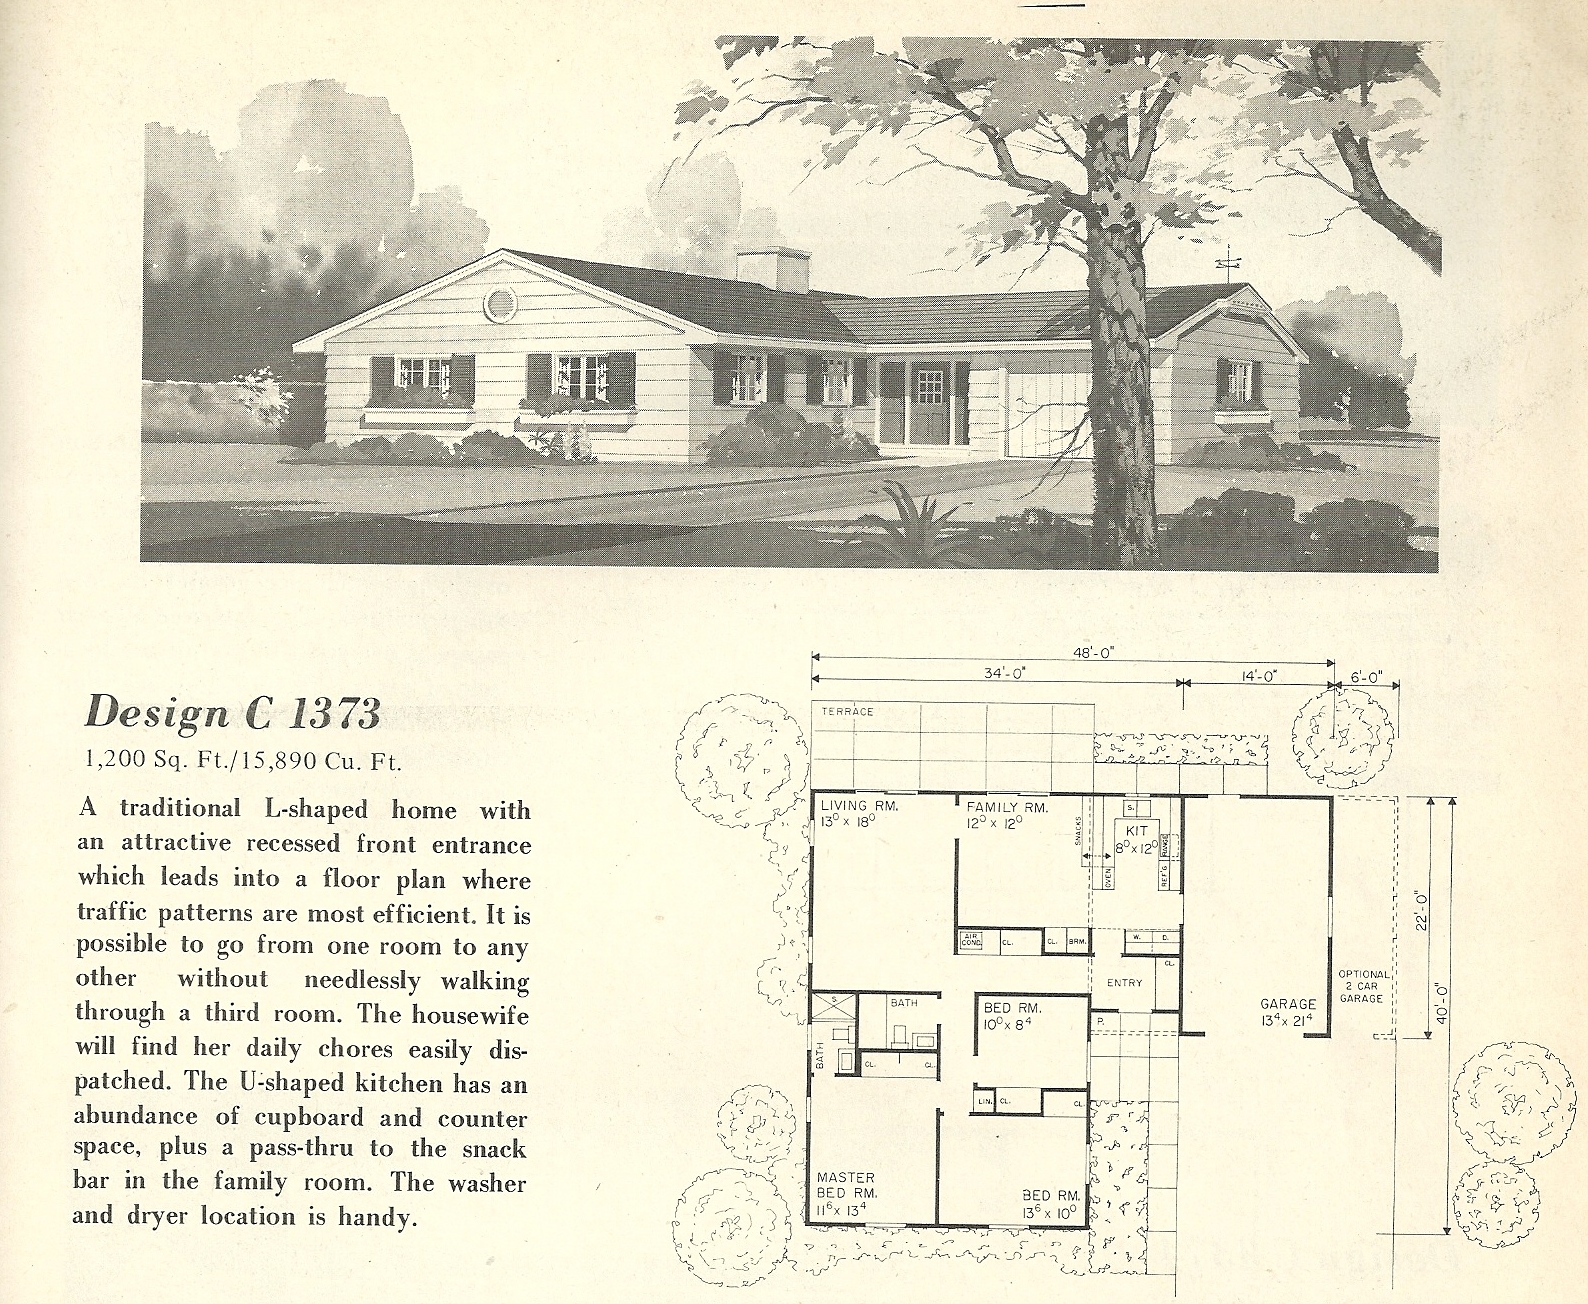 Vintage house plans 1373 antique alter ego for Vintage home plans